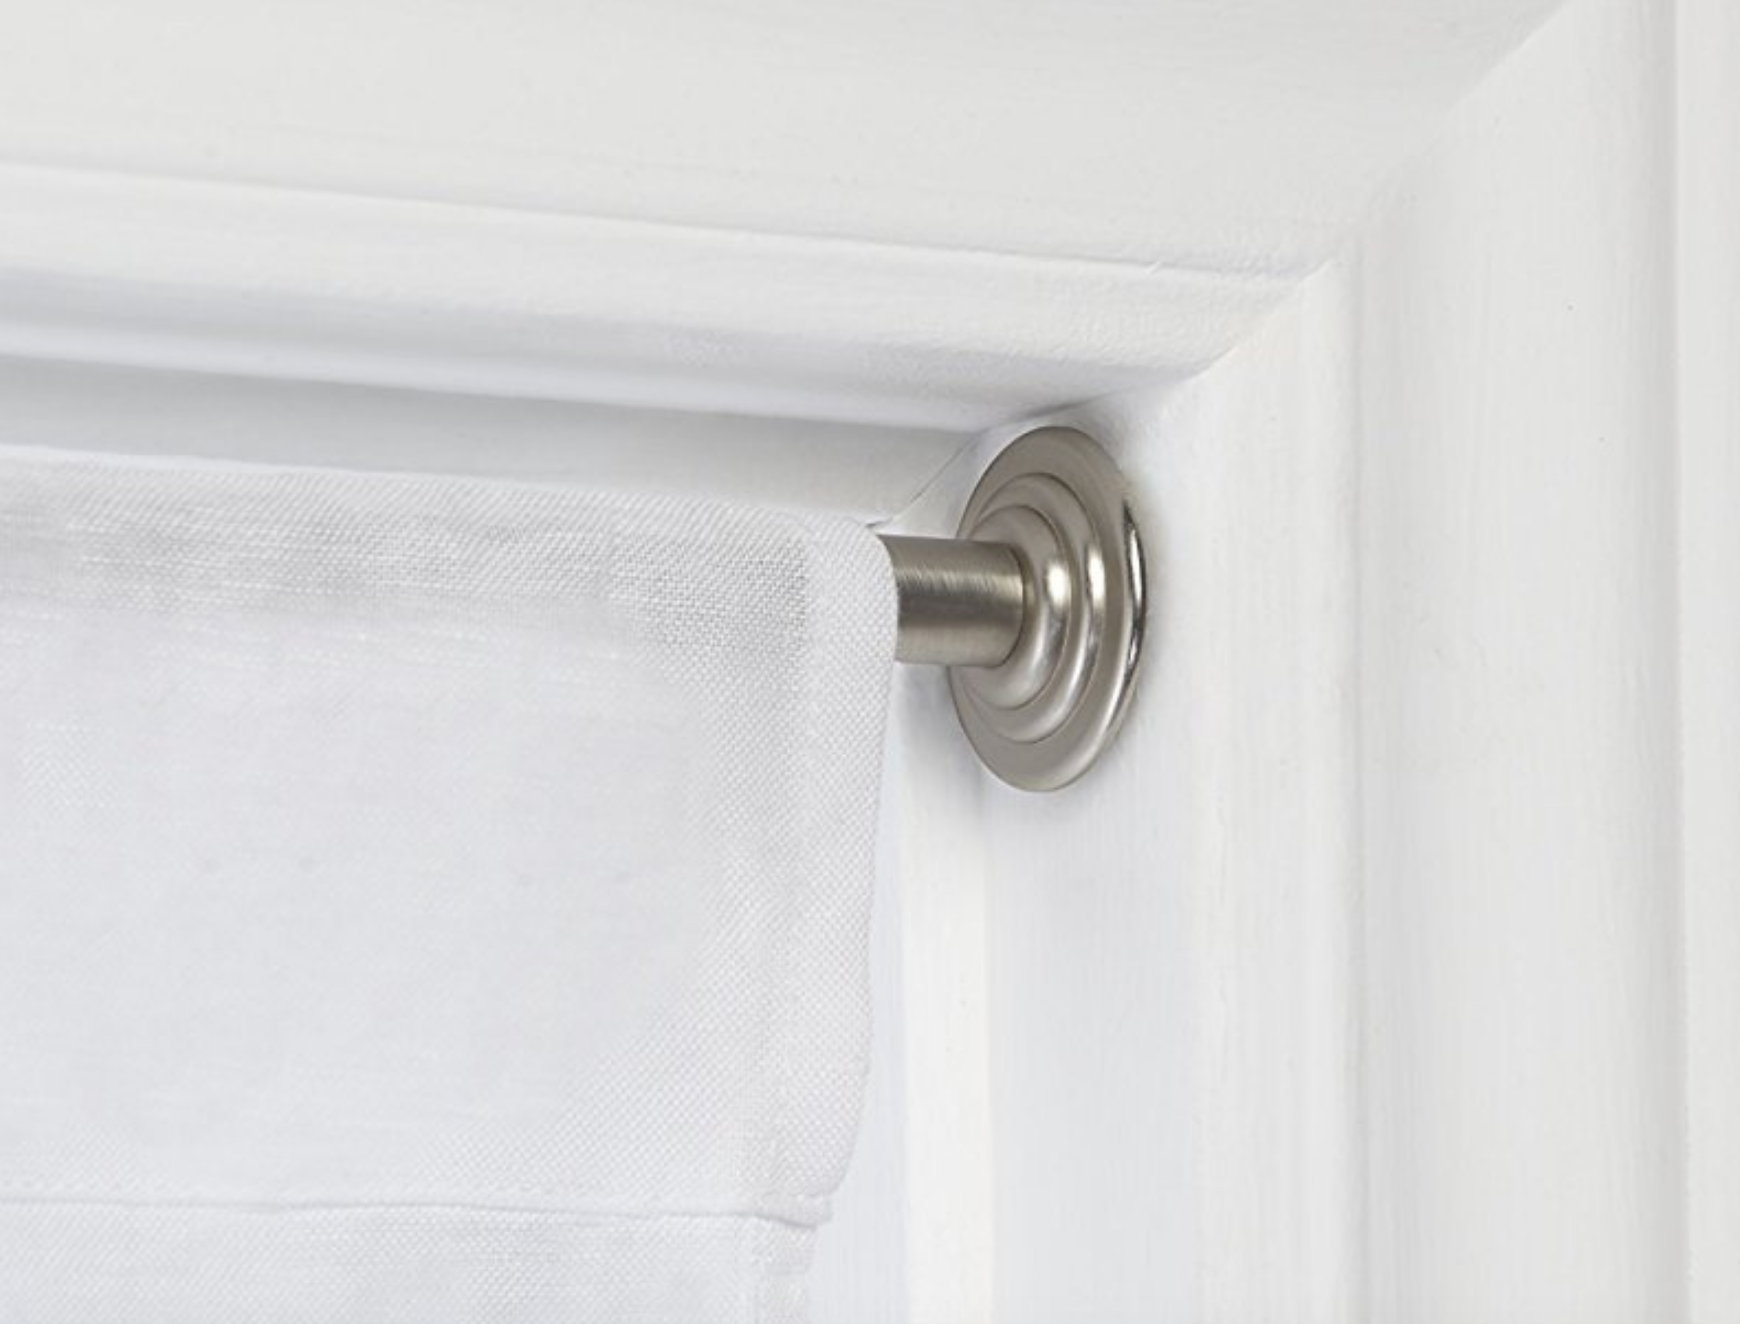 Curtain Rods: Hang Them Without Drilling Holes | The Money Pit